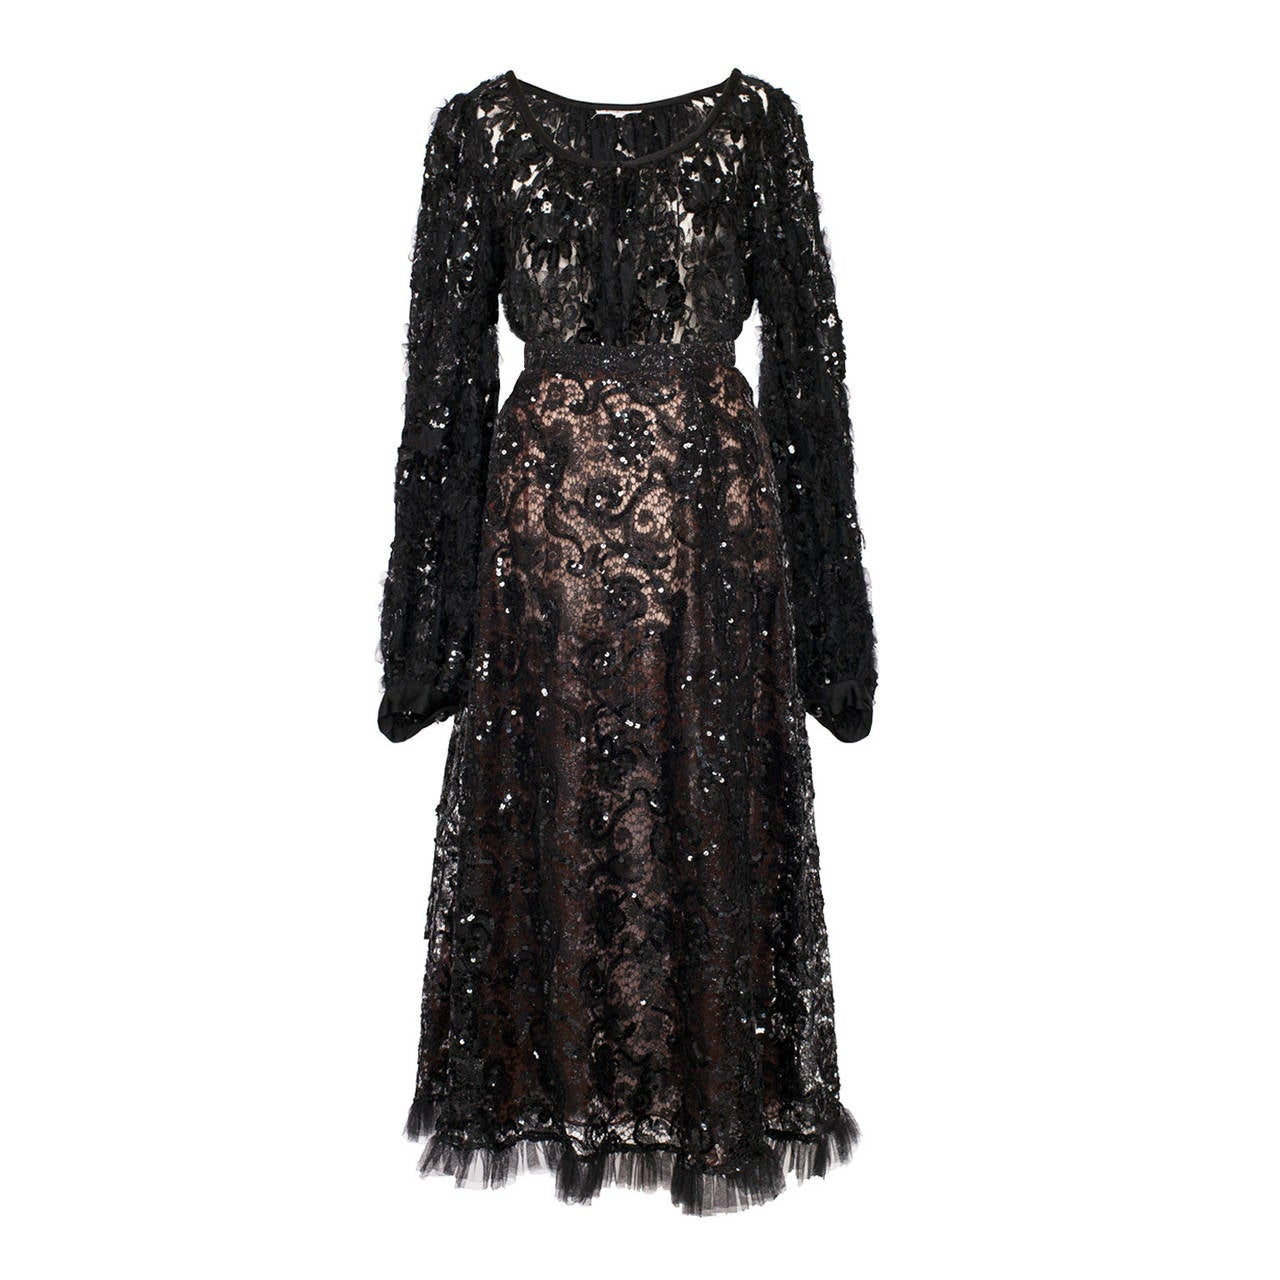 Yves Saint Laurent Black Lace Paillette Ensemble 70's